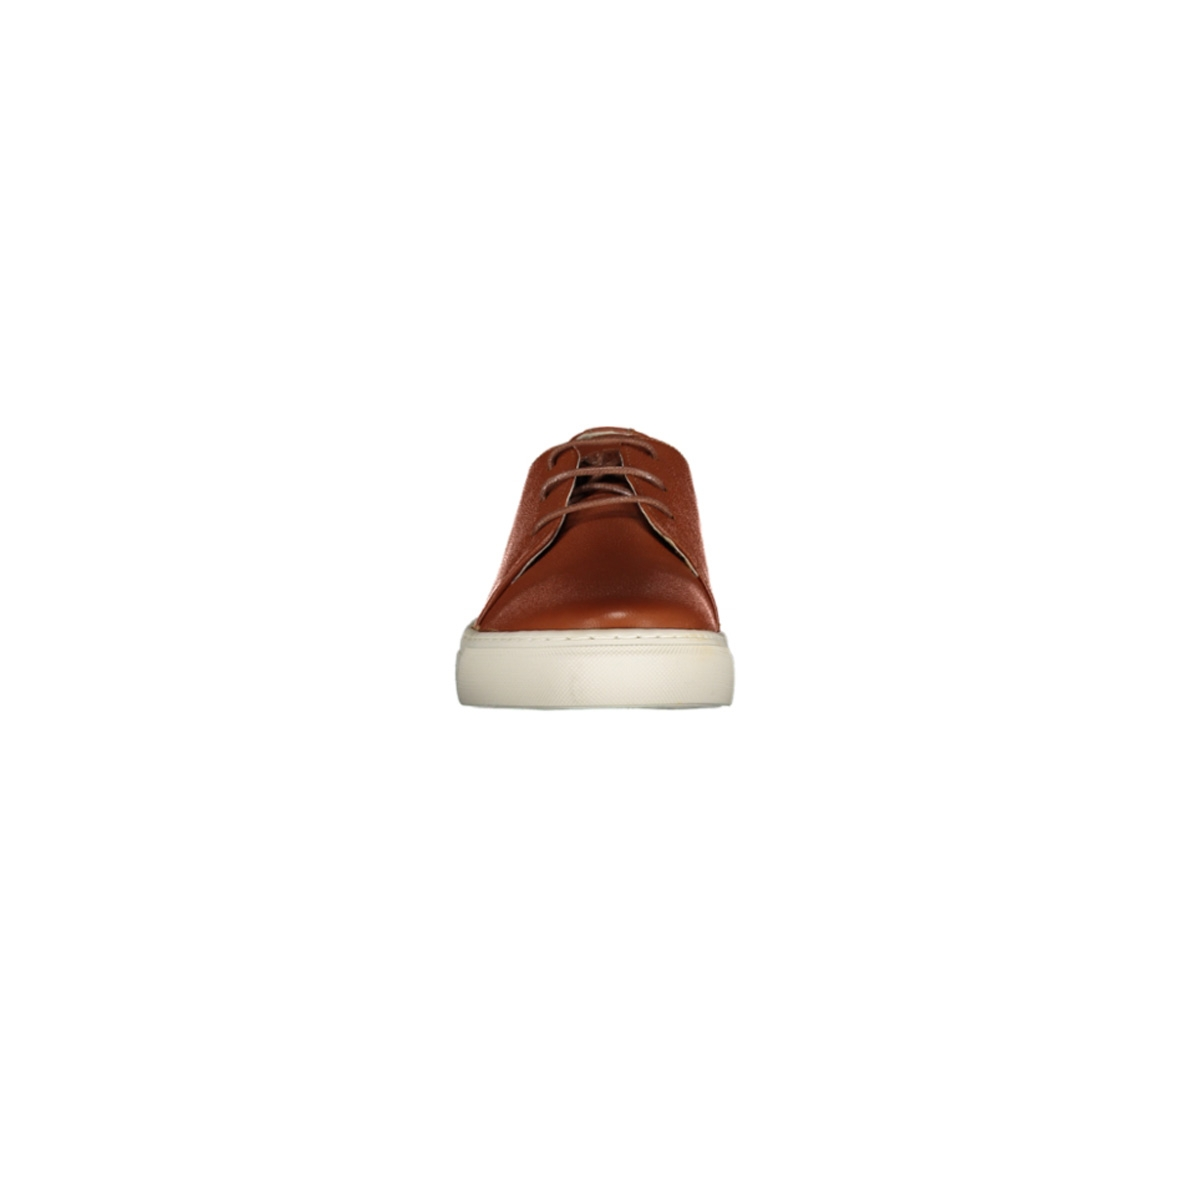 jfwatlas leather snaker camel 12129133 jack & jones schoen camel